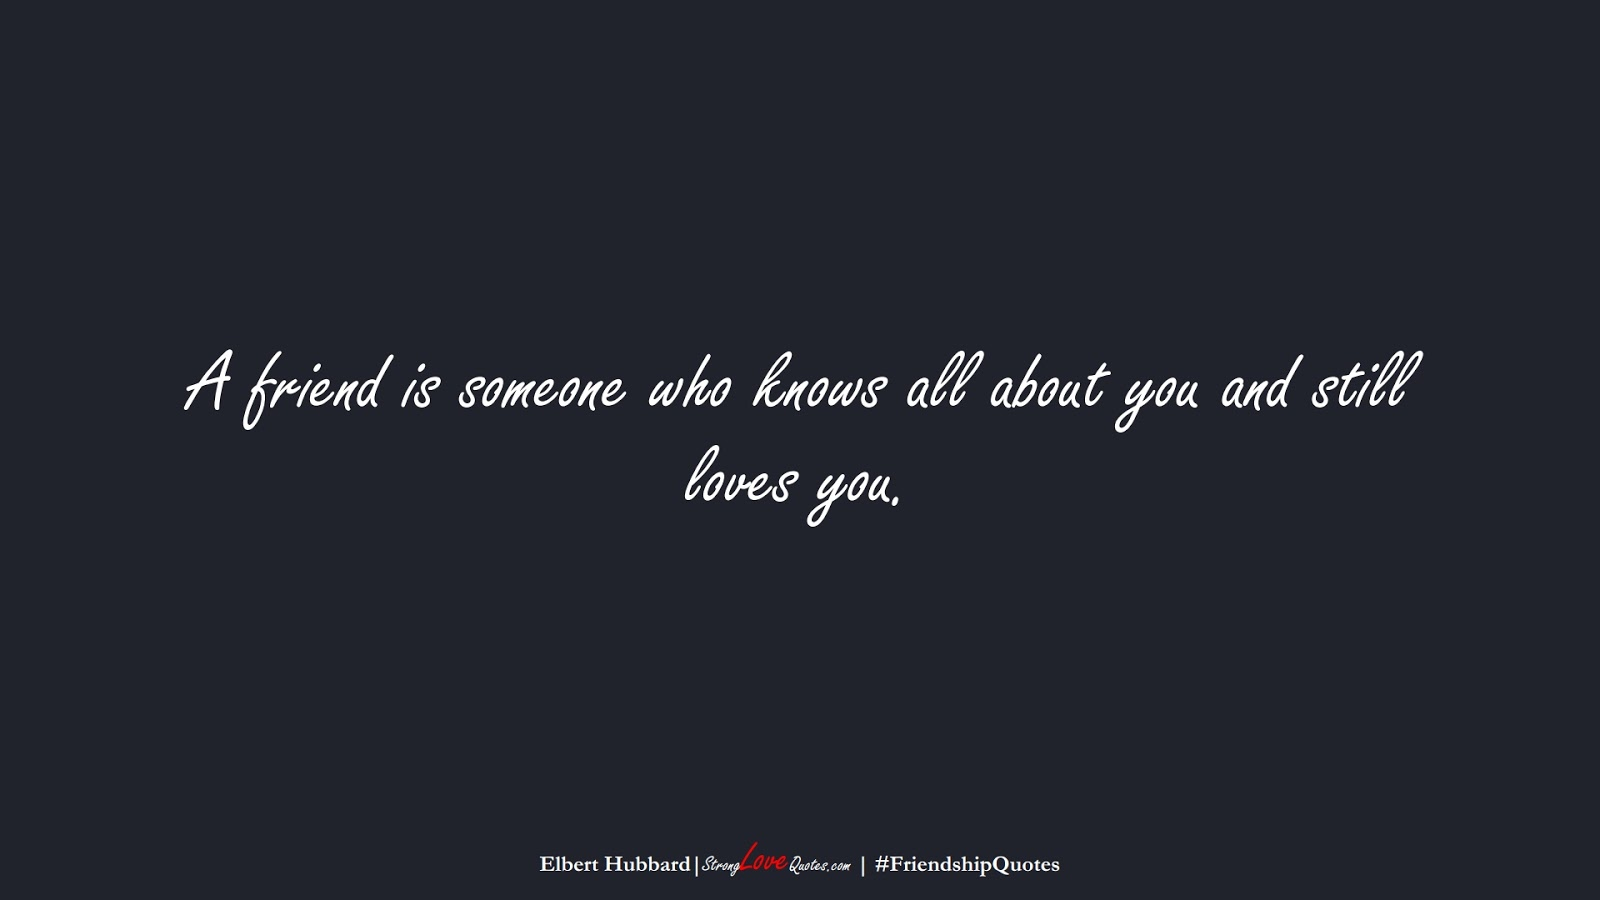 A friend is someone who knows all about you and still loves you. (Elbert Hubbard);  #FriendshipQuotes